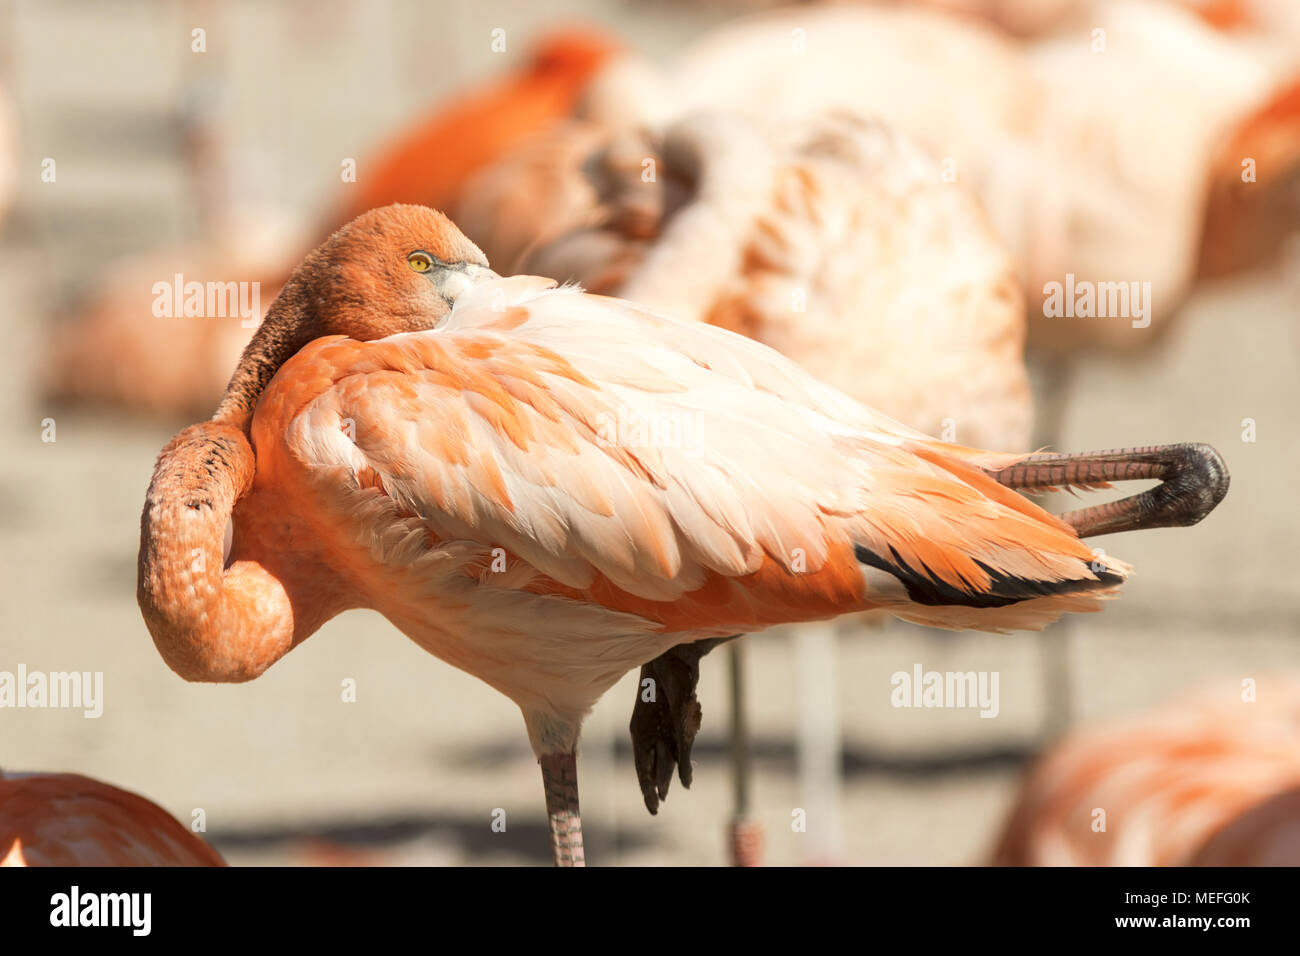 The portrait of the pink flamingo. The detail of the head with the the body of the bird. The other birds on background. Phoenicopterus ruber. Stock Photo